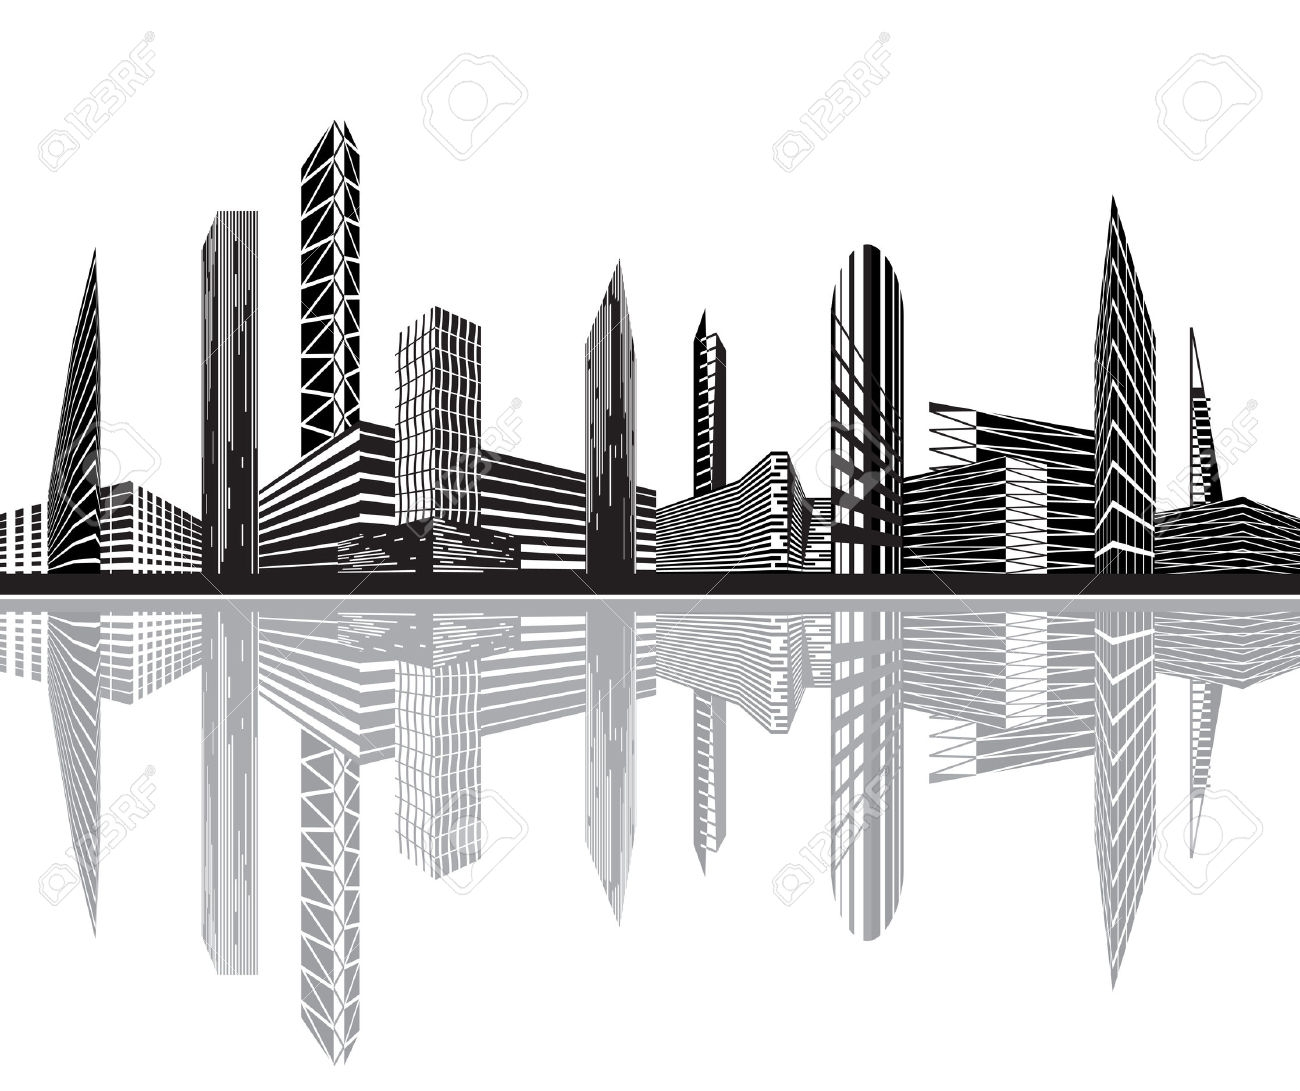 Building clipart city building Images Clipart Black (3620) City